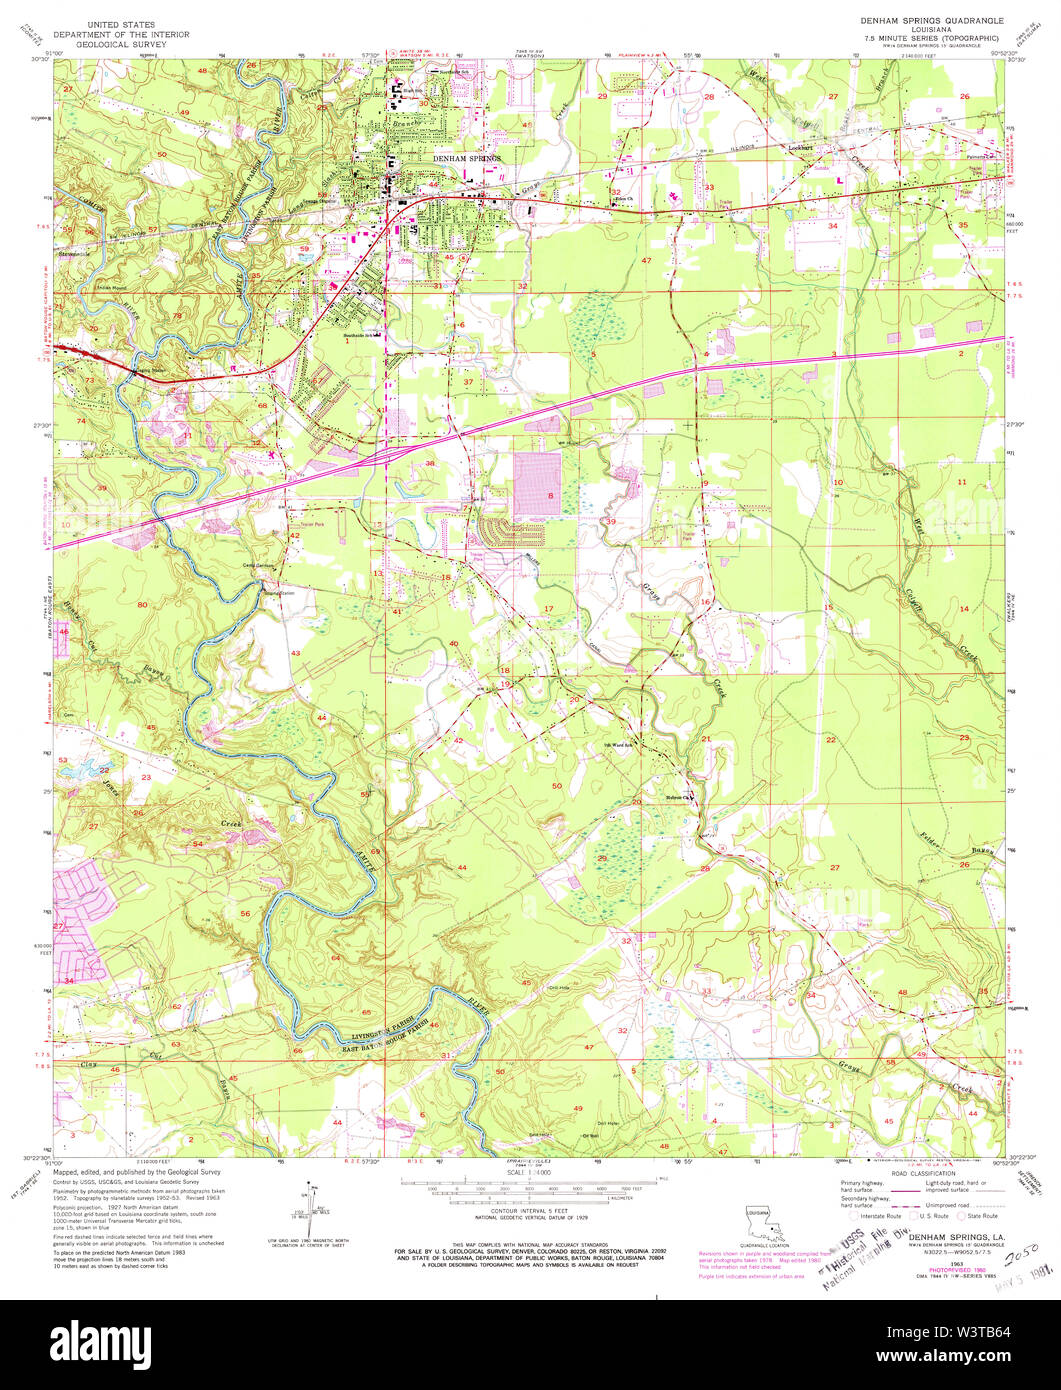 USGS TOPO Map Louisiana LA Denham Springs 331830 1963 24000 ... Denham Springs La Map on head of island la map, slidell la map, scott la map, de ridder la map, st. martinville la map, camp beauregard la map, west feliciana parish la map, franklinton la map, saint francisville la map, saint amant la map, metairie la map, florida la map, algiers la map, lafayette la map, farmerville la map, lake pontchartrain la map, st. francisville la map, tickfaw la map, washington la map, napoleonville la map,